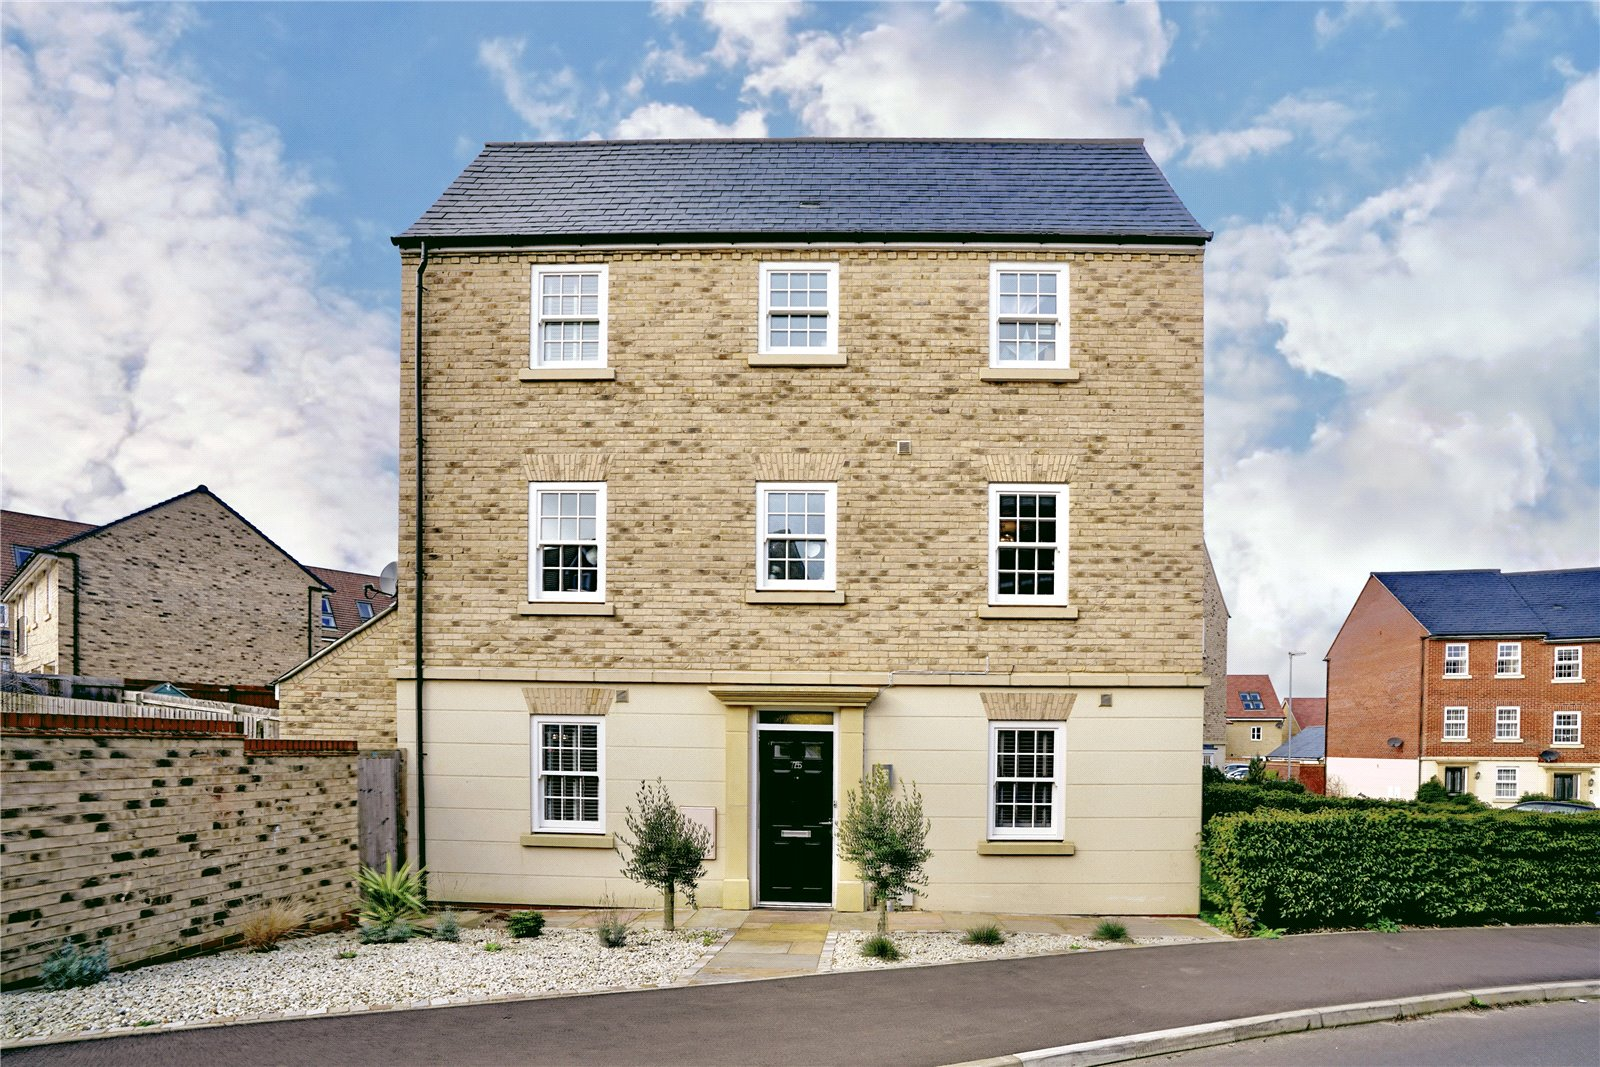 4 bed house for sale in Papworth Everard, CB23 3AB - Property Image 1